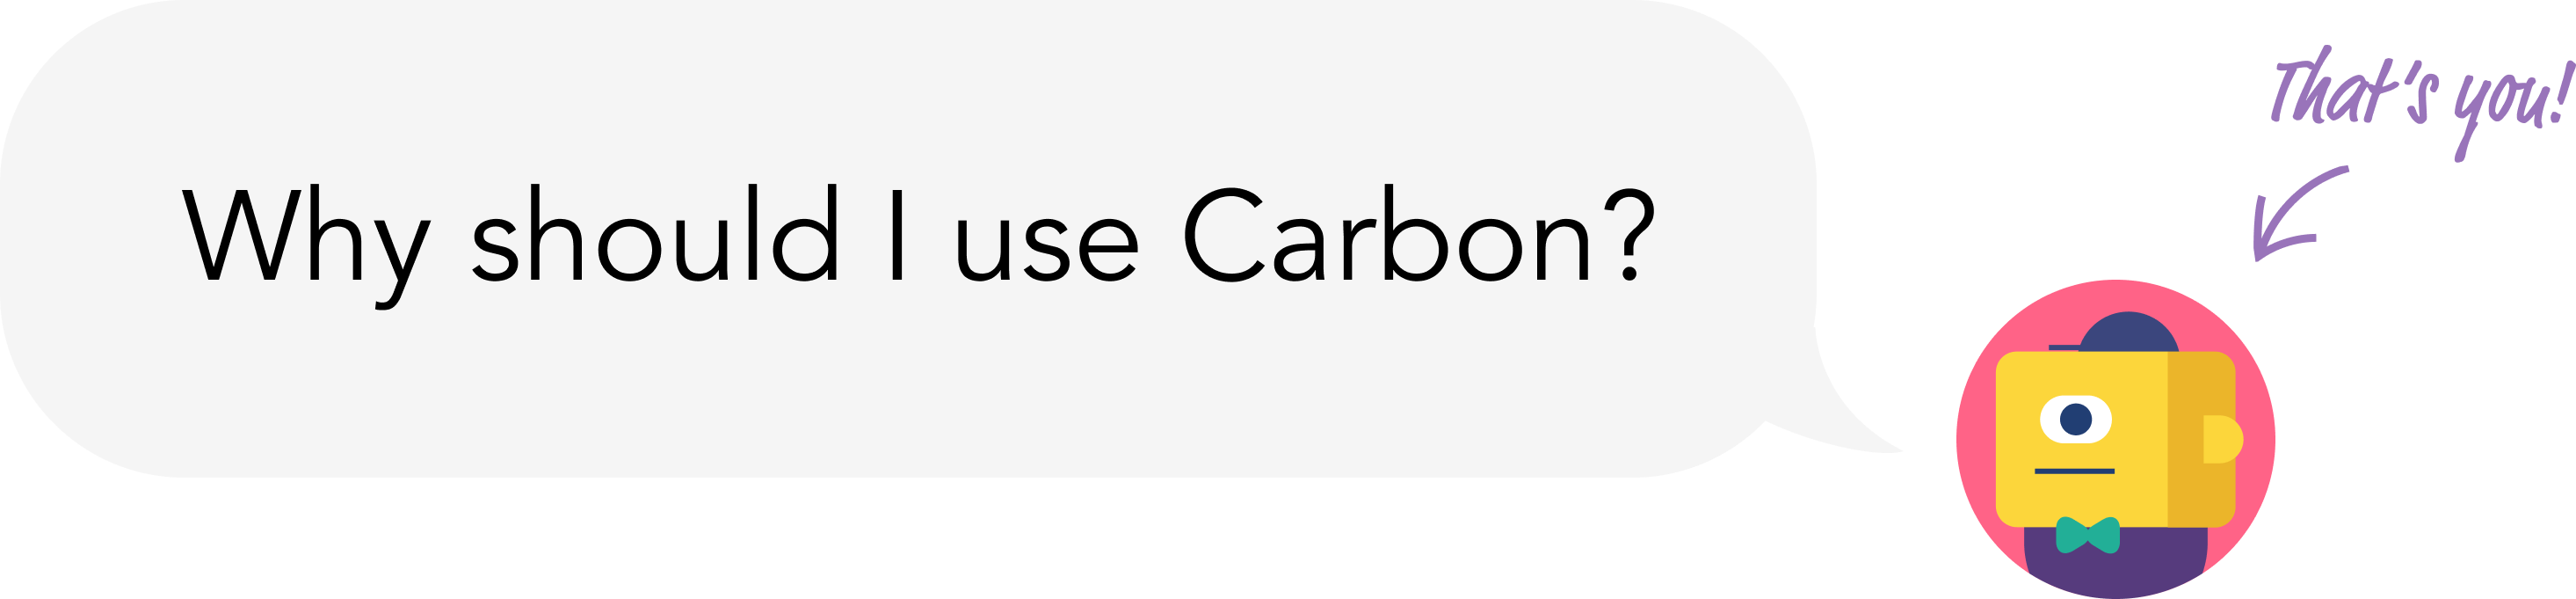 thats-you-carbon